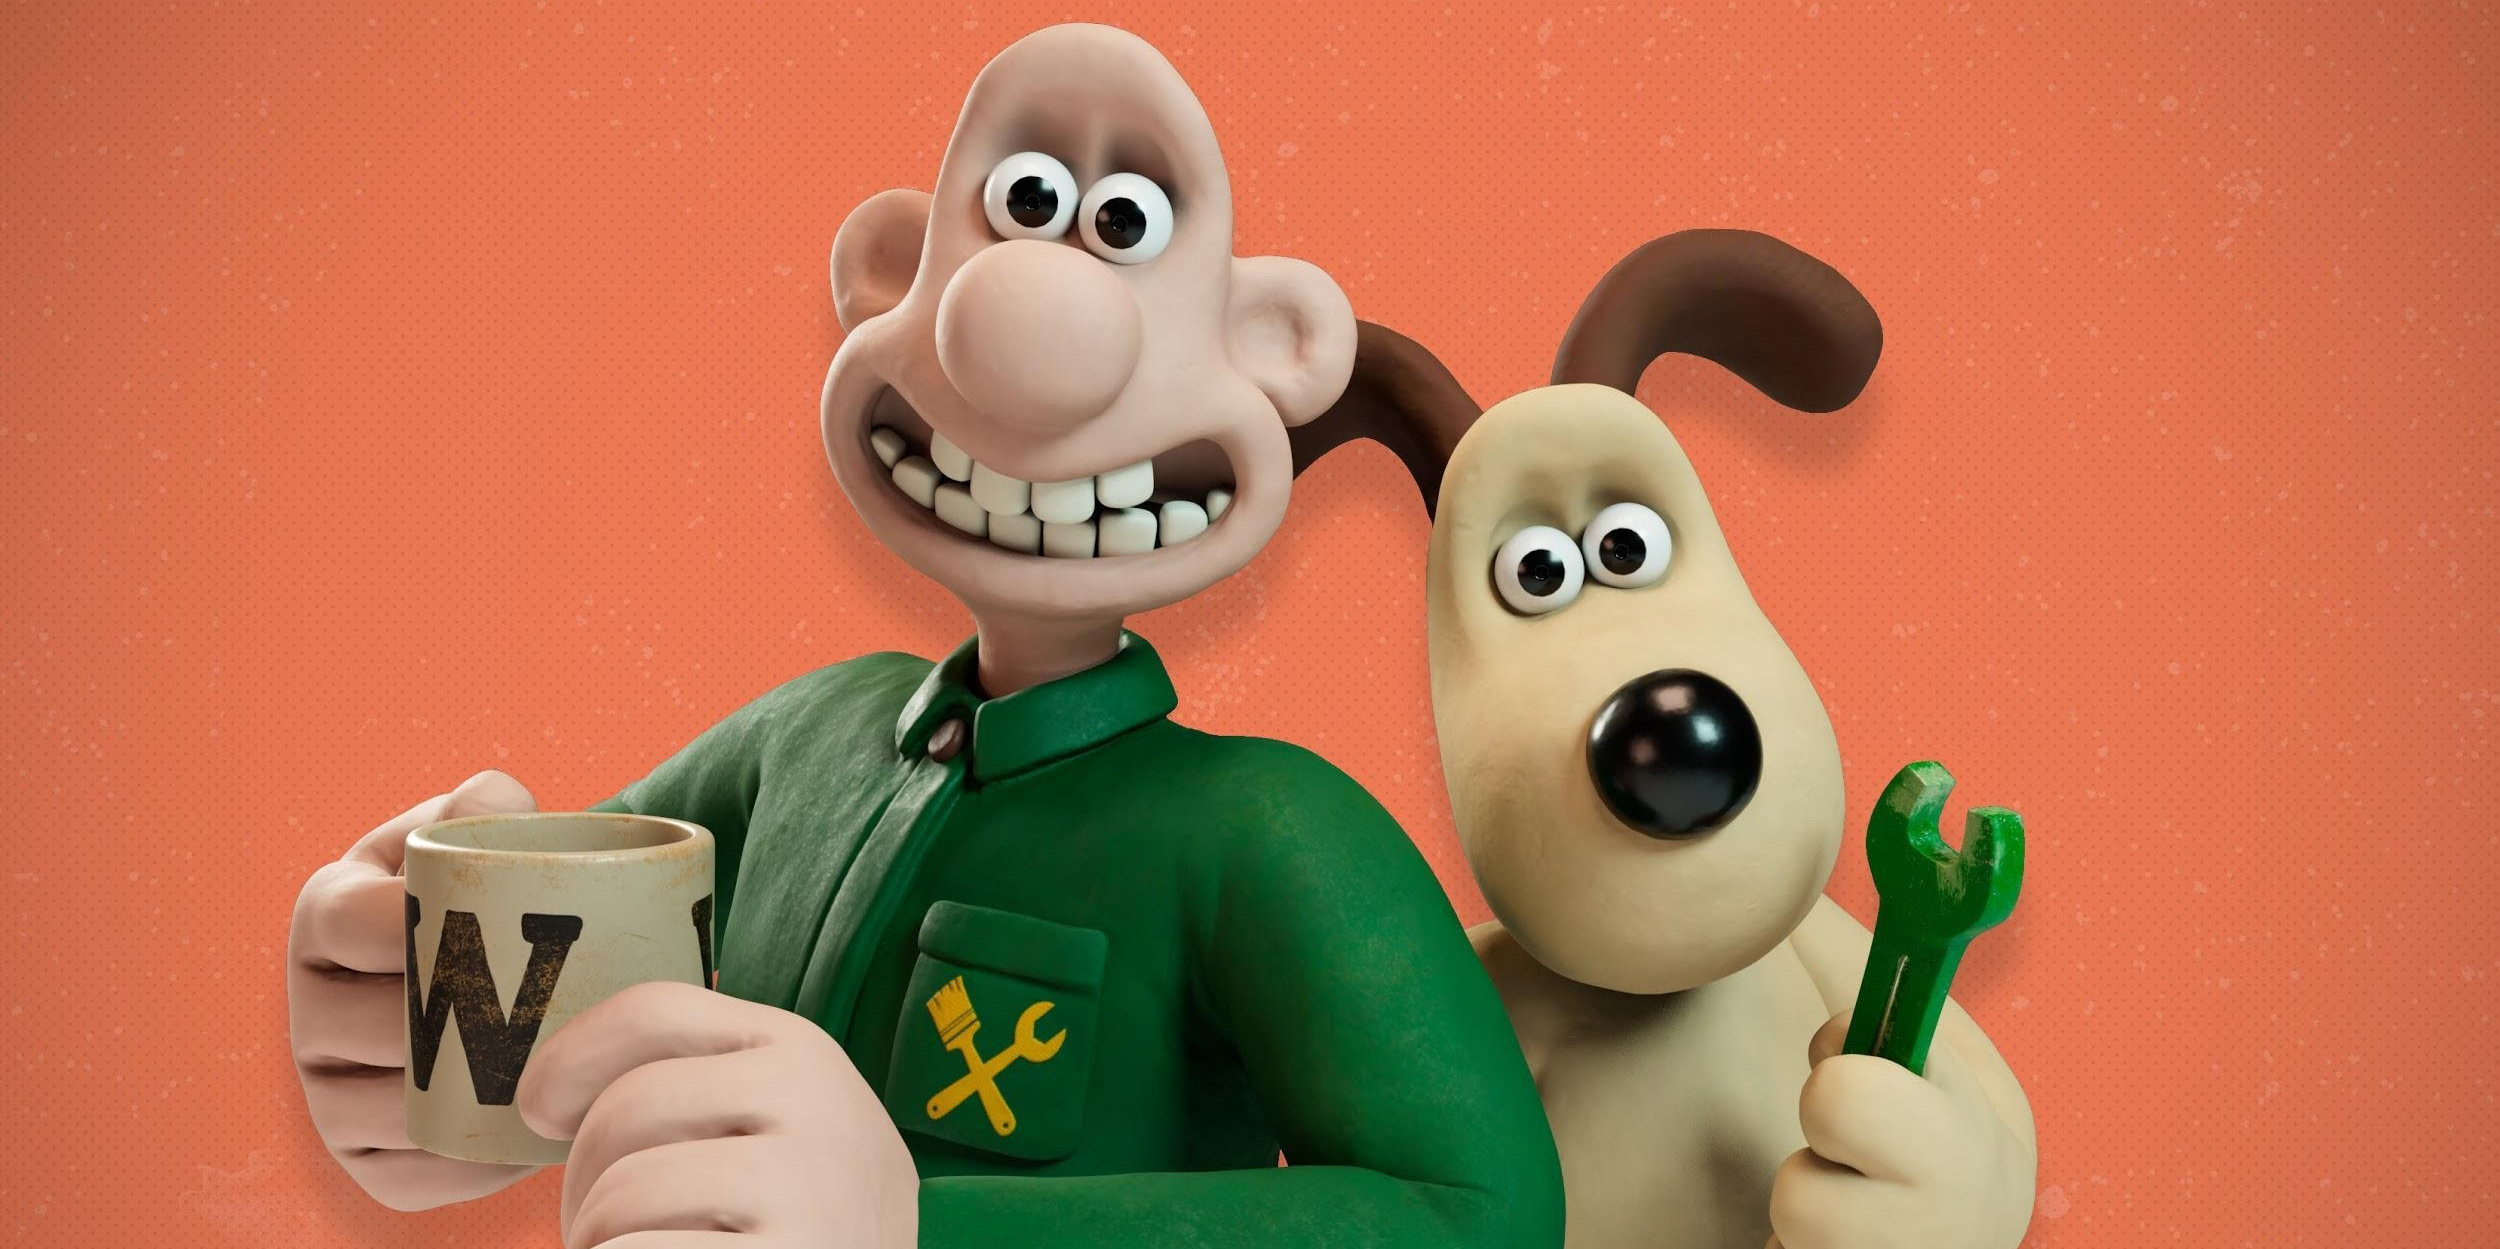 Wallace & Gromit: The Big Fix Up is a new augmented reality game out now on iOS and Android